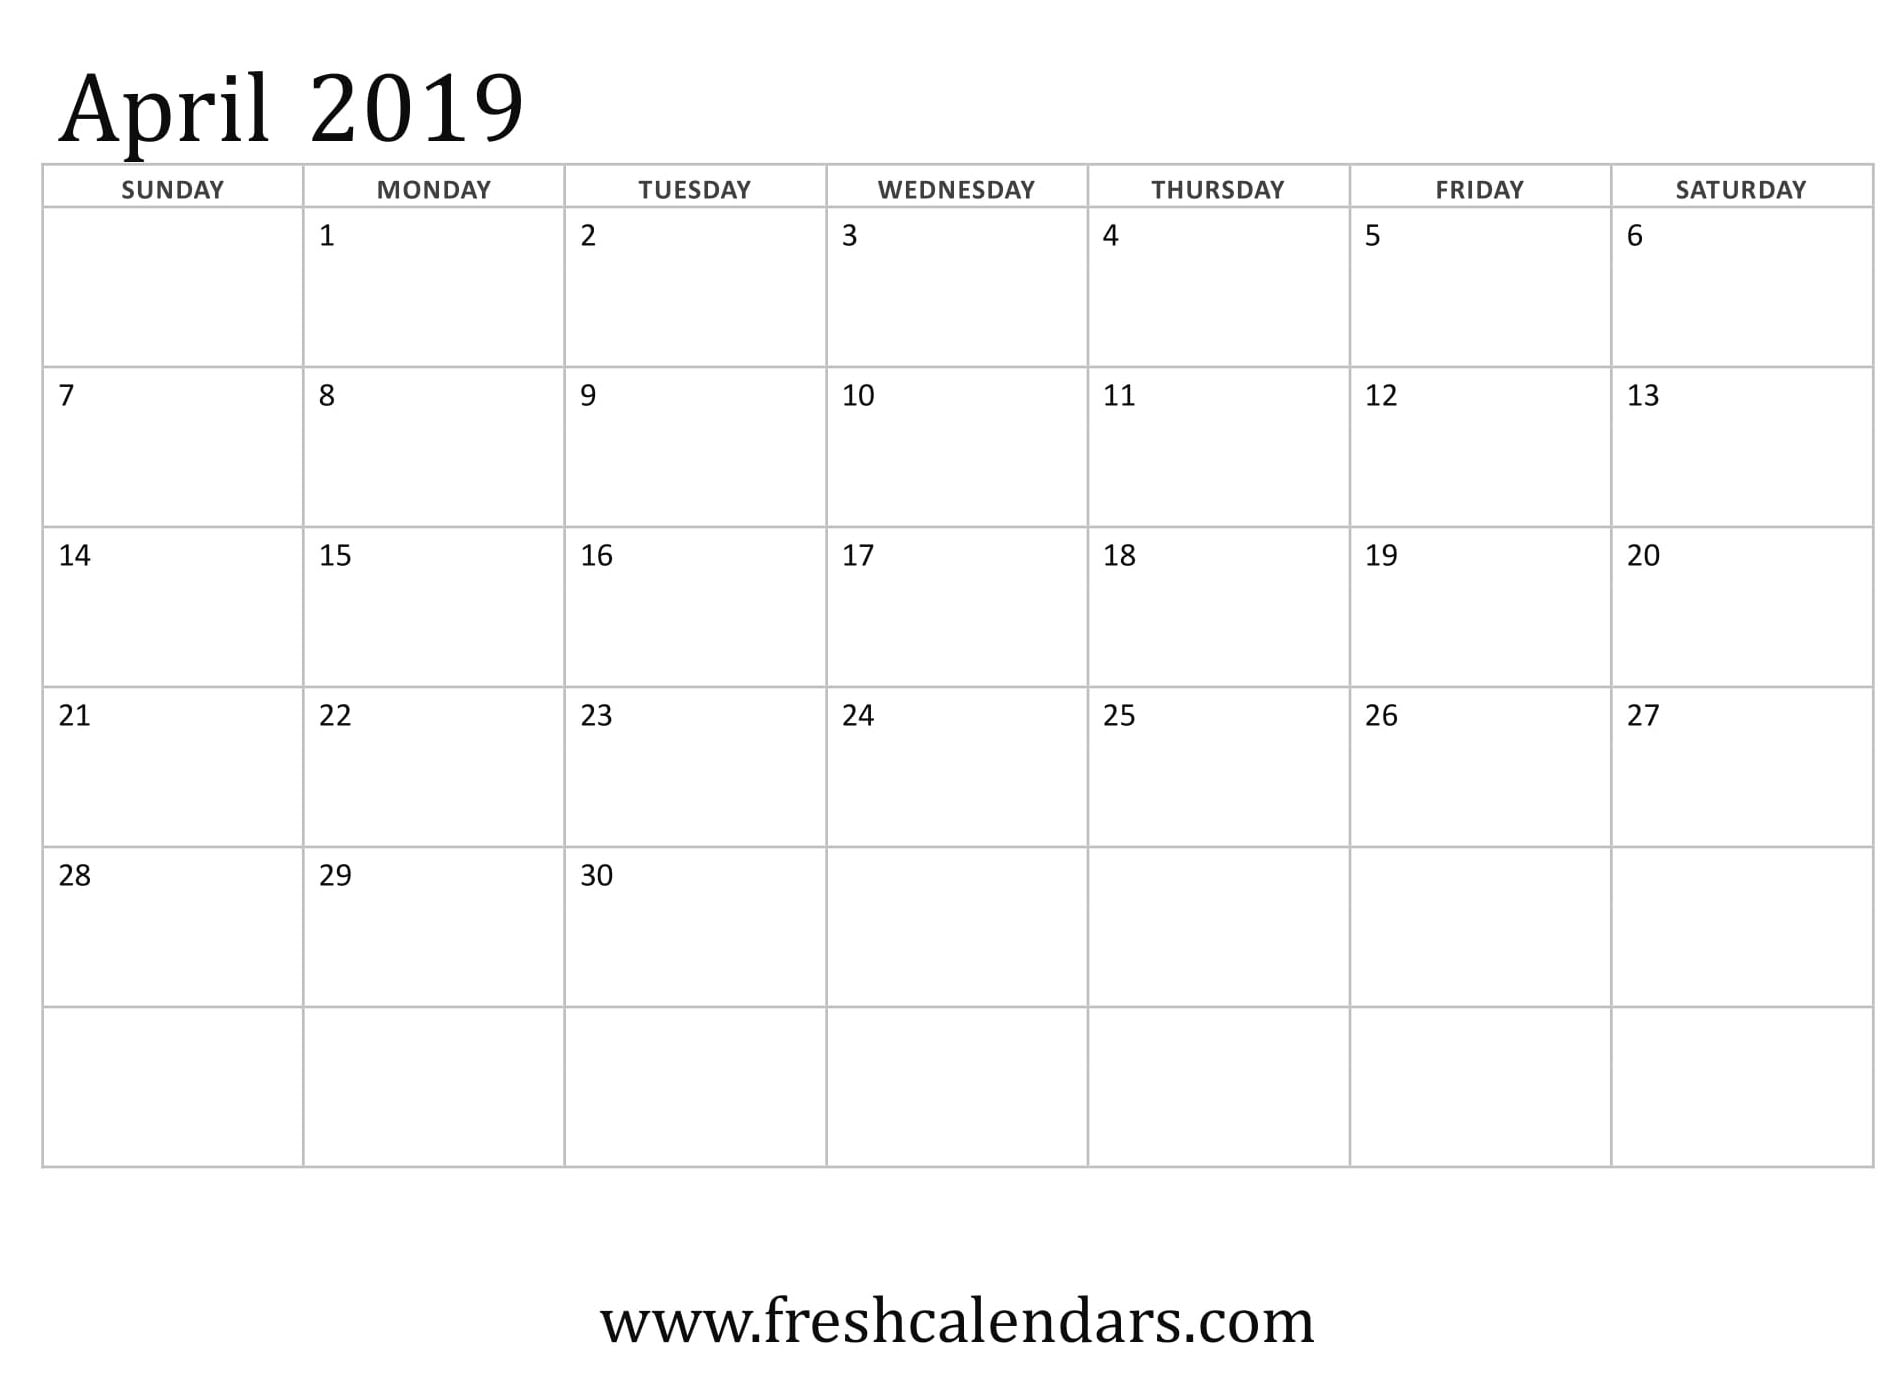 April 2019 Calendar Basic Template